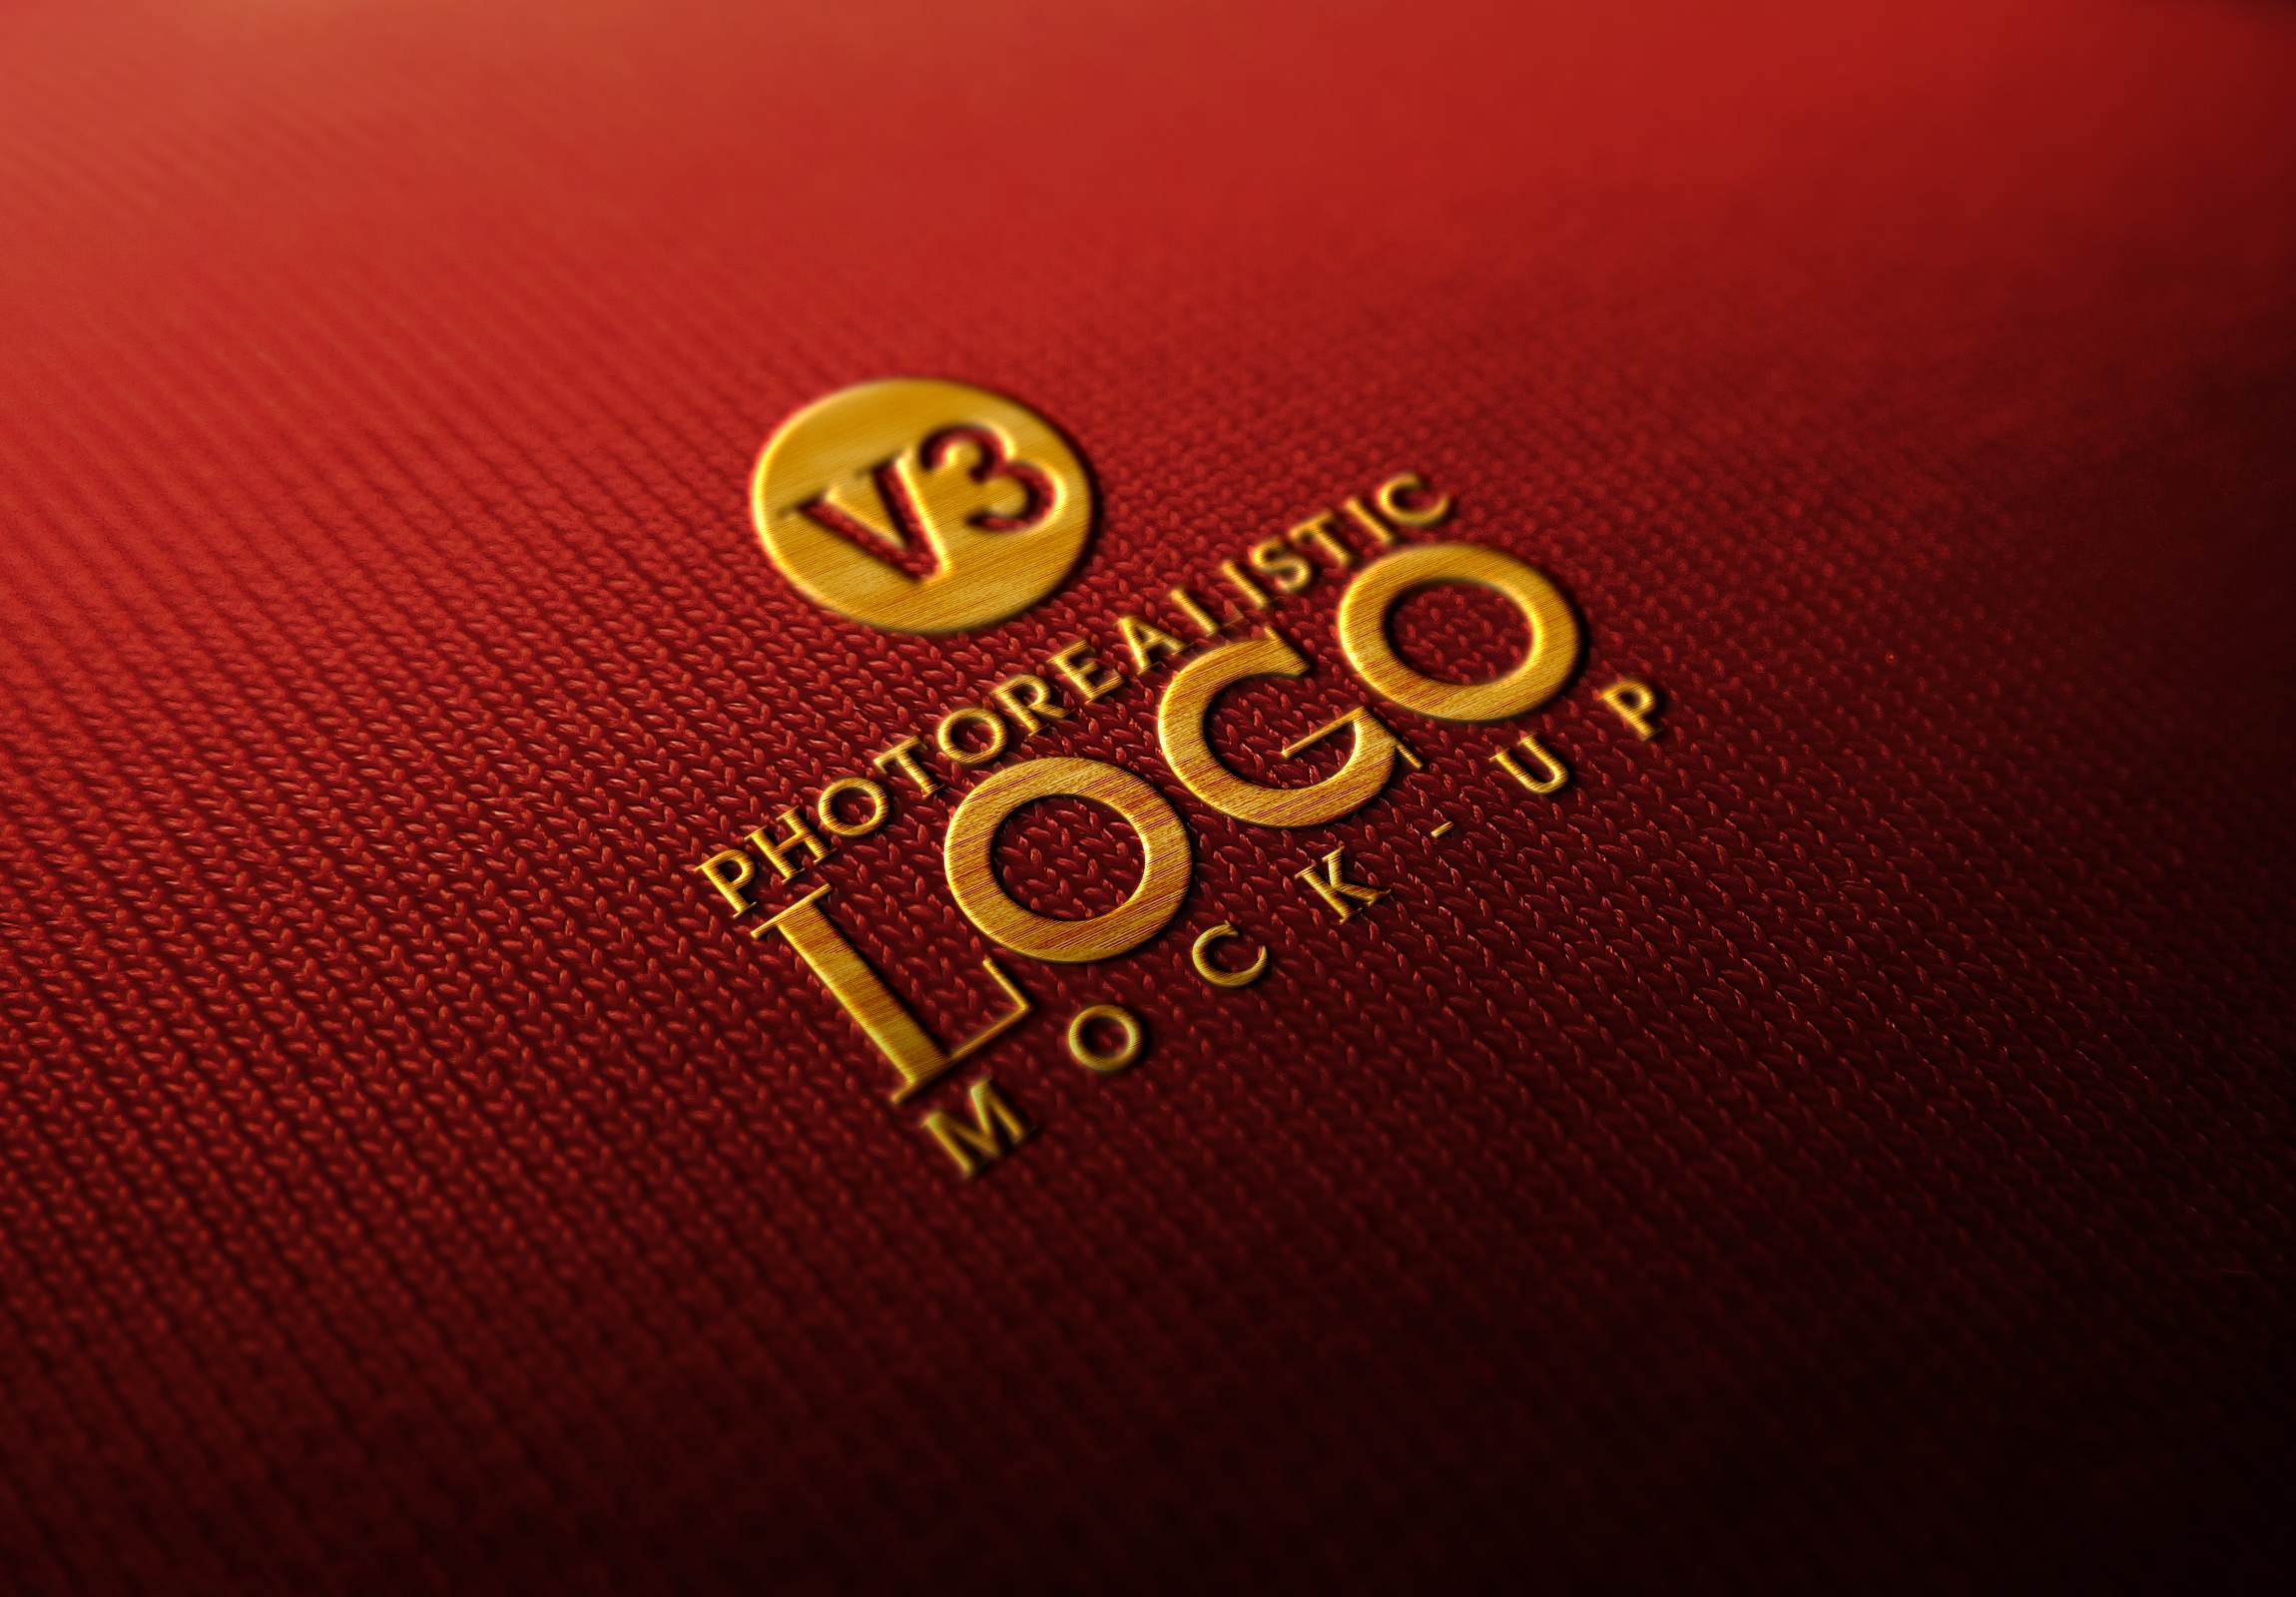 shiny 3d Logo and give 3d look for your logo